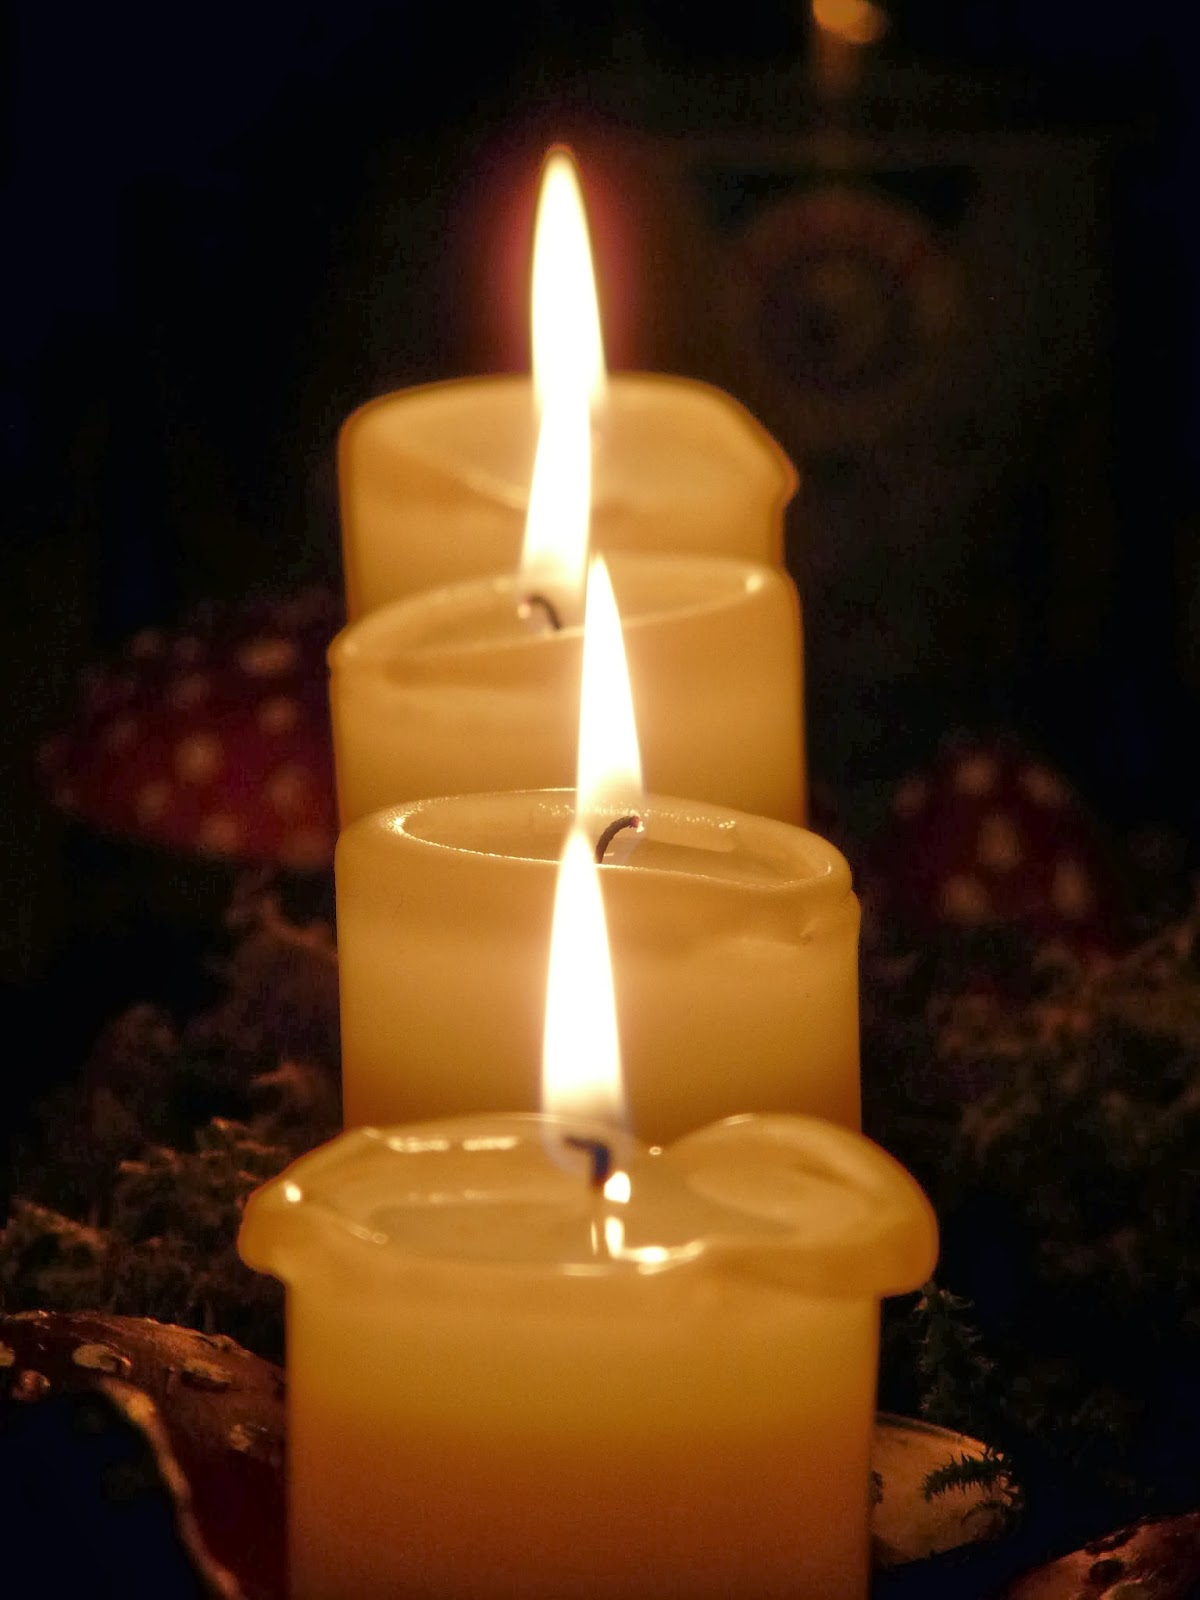 http://all-free-download.com/free-photos/candles_candlelight_wick_223612.html